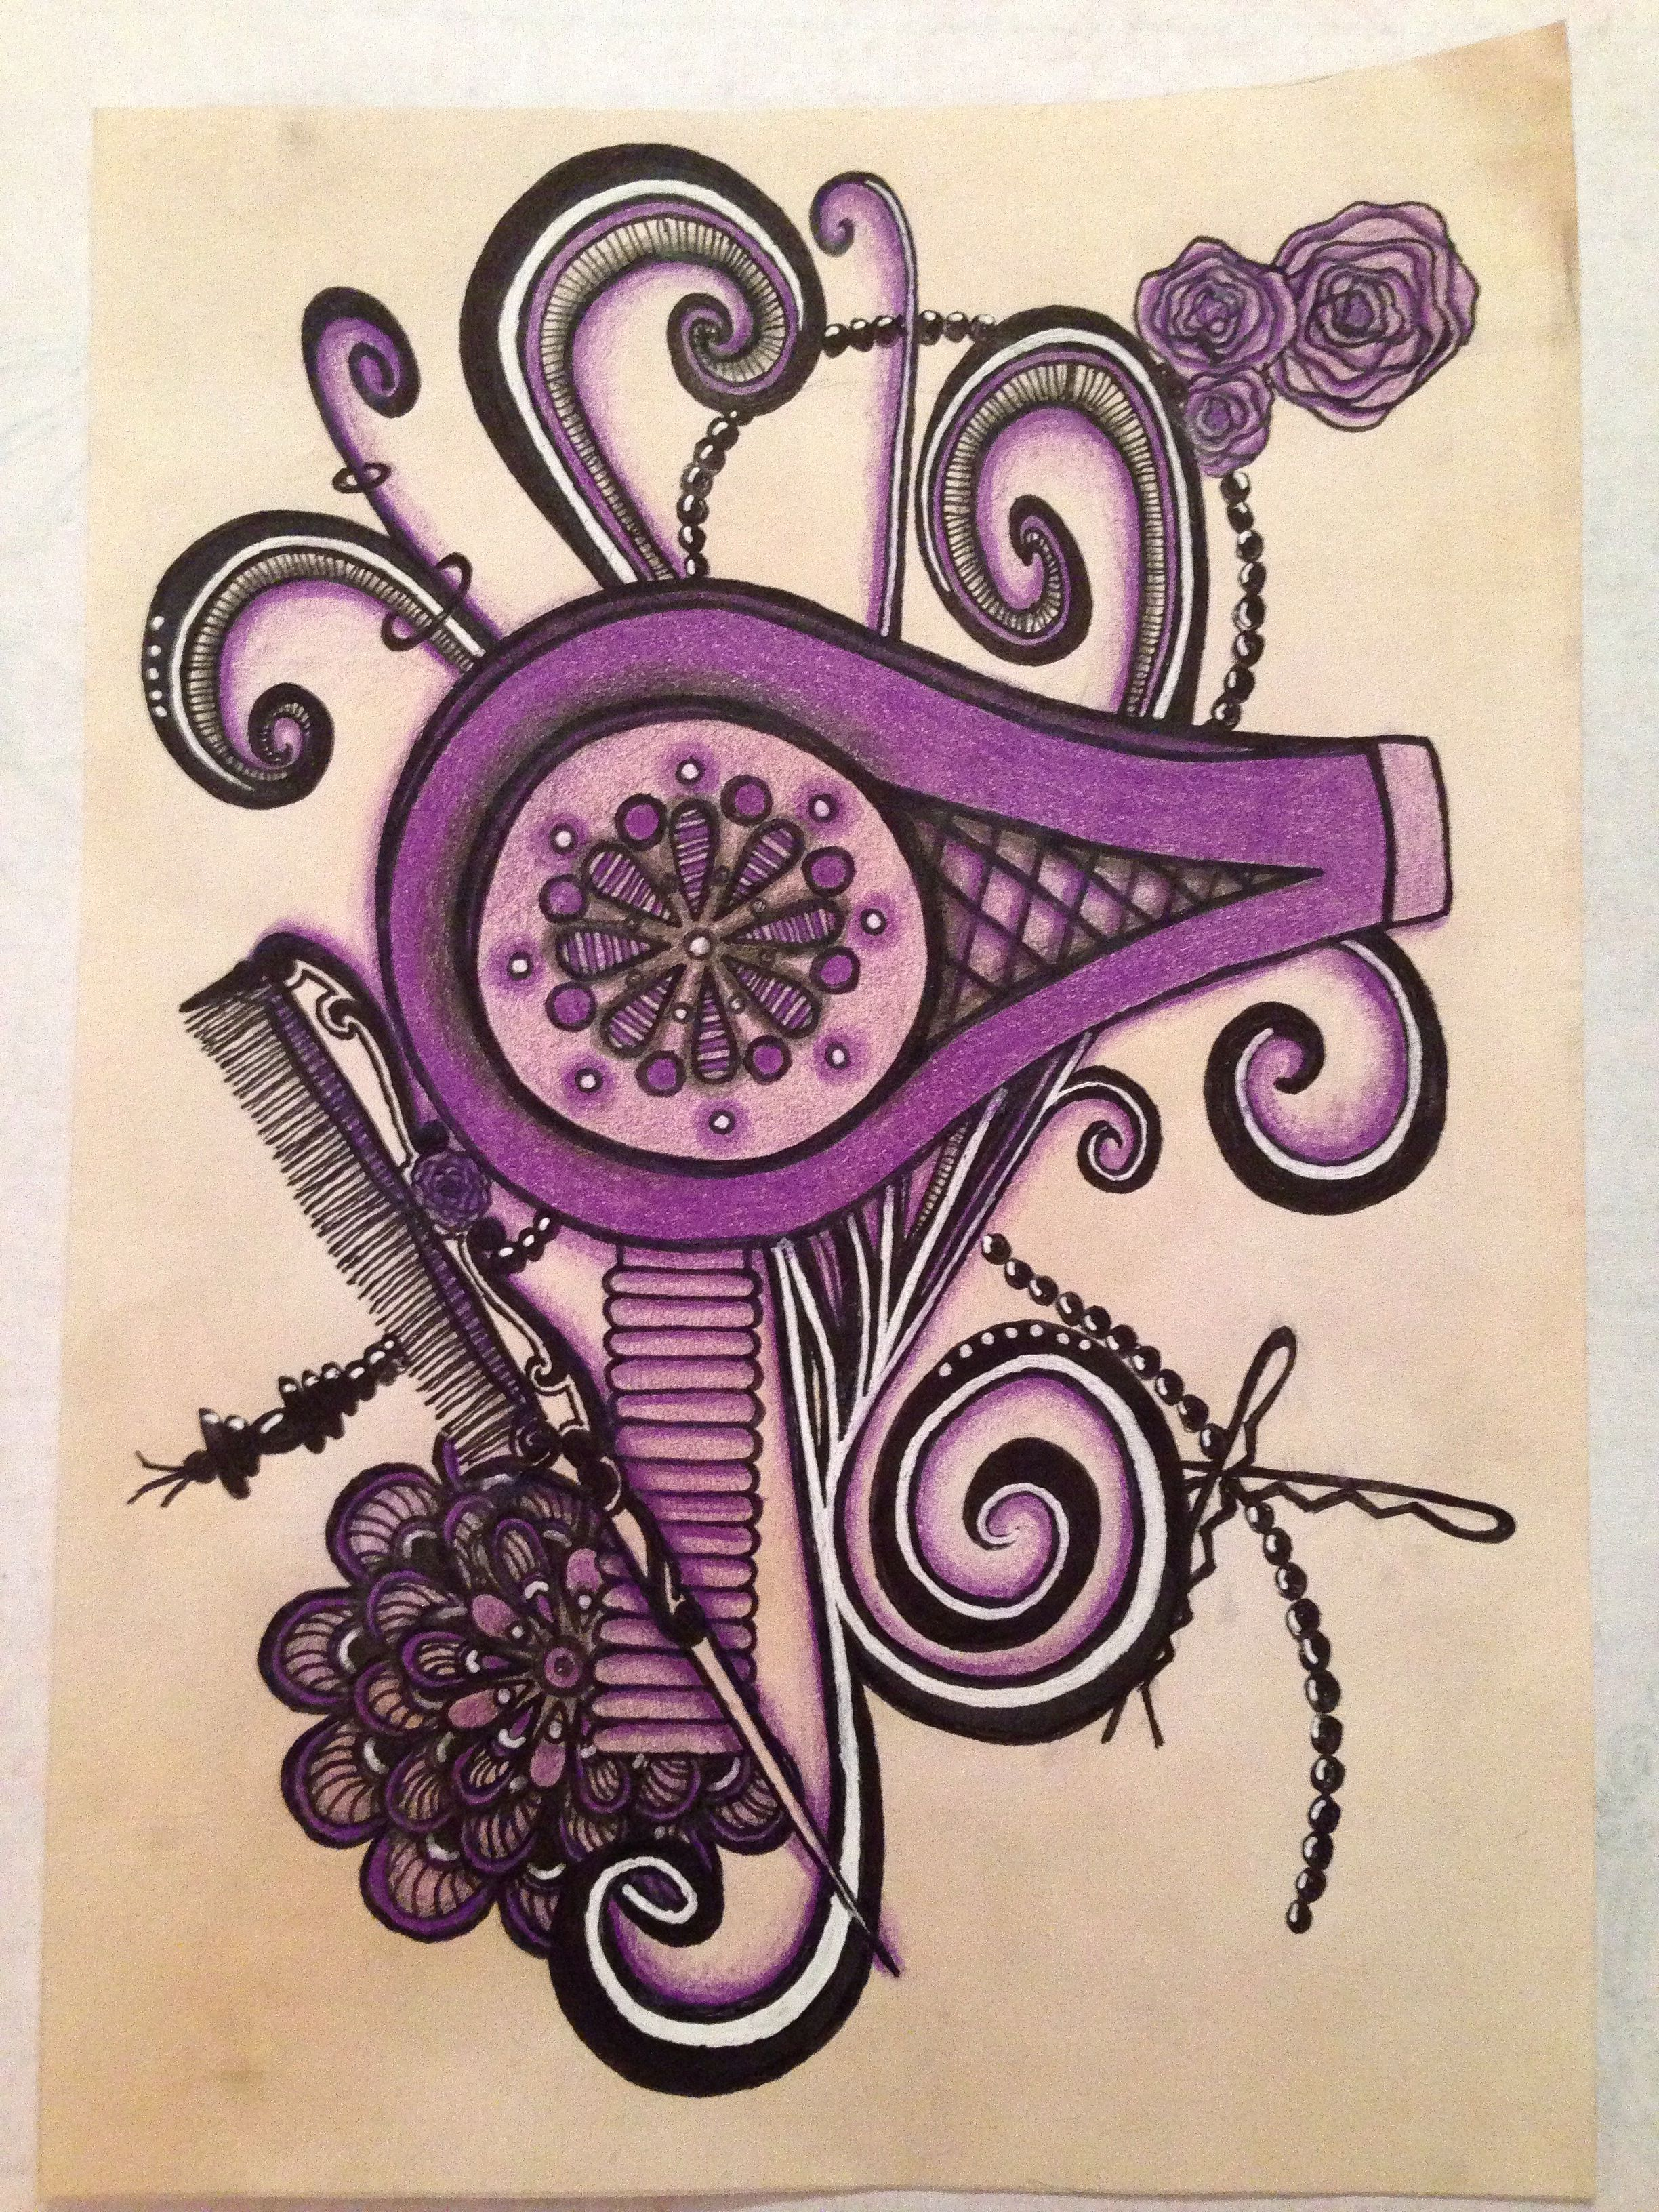 Cosmetology Tattoos Designs Ideas And Meaning: My Creations & Photography